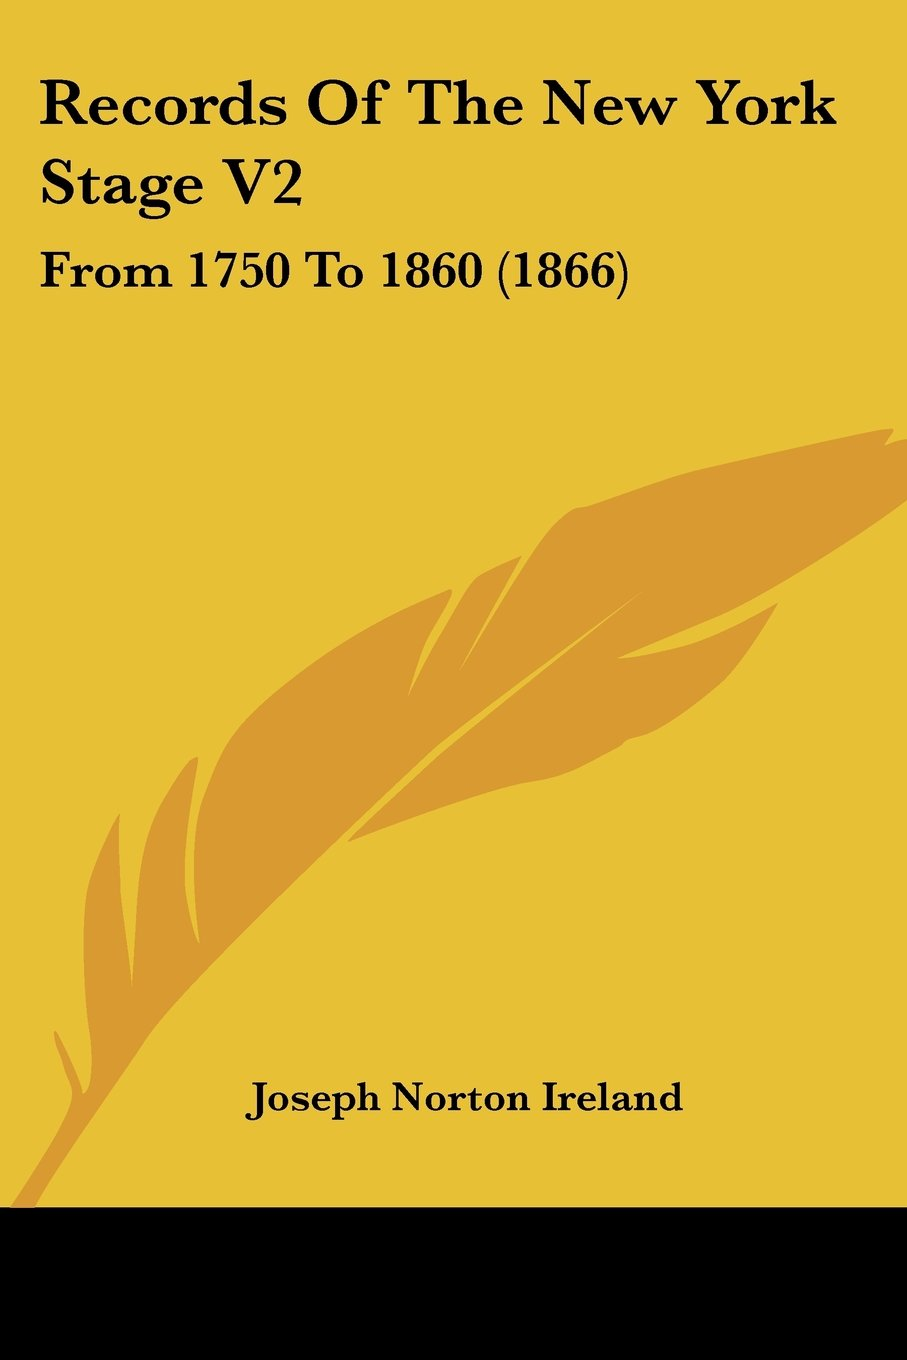 Records Of The New York Stage V2: From 1750 To 1860 (1866) PDF